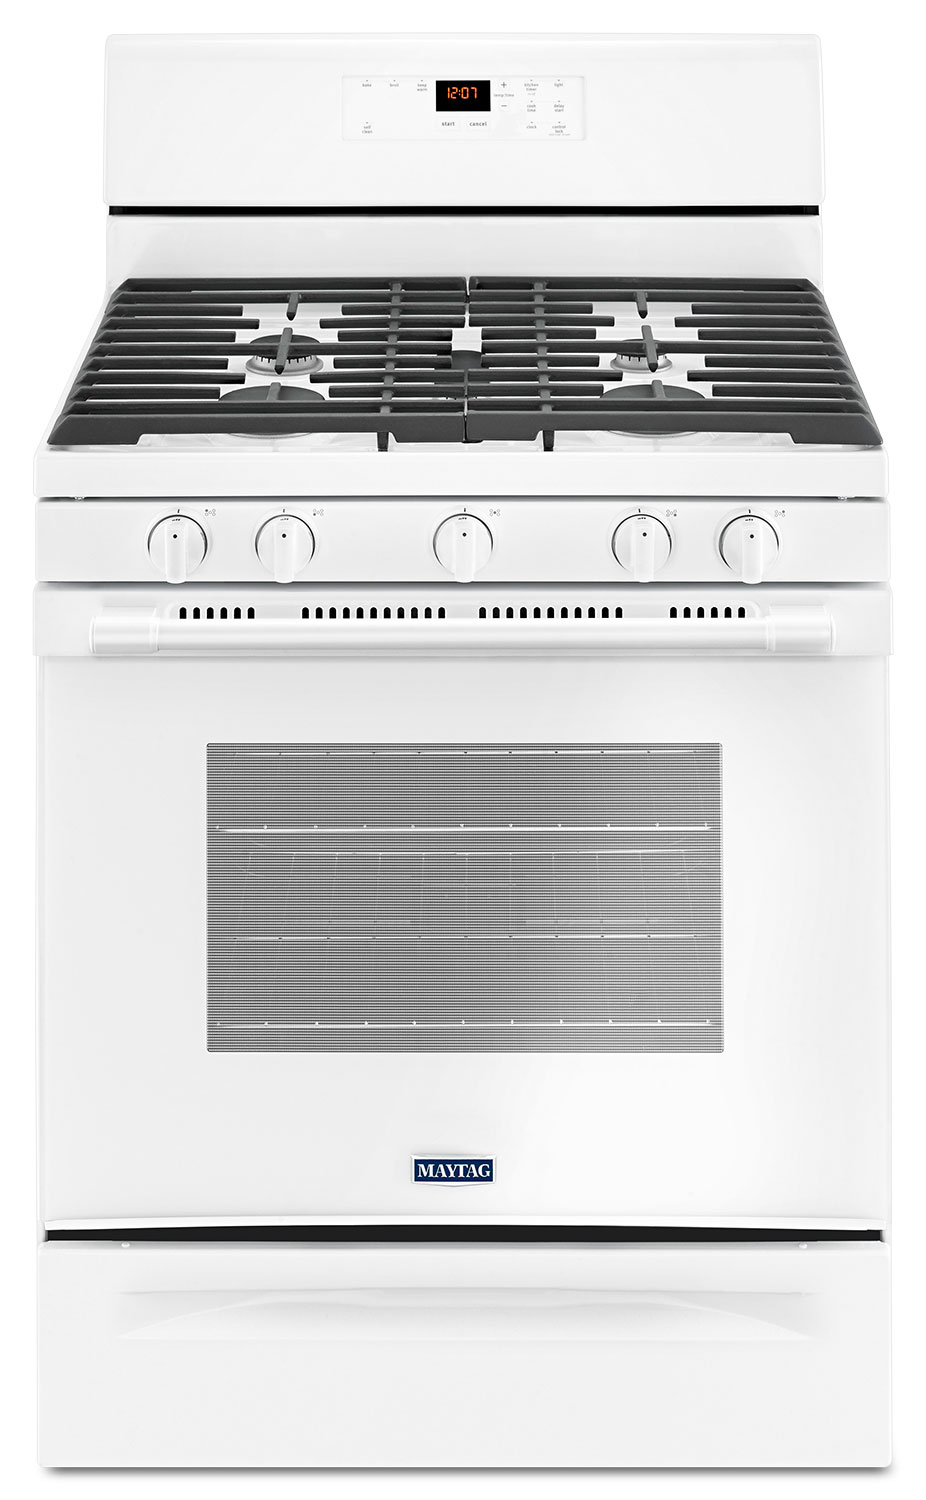 Cooking Products - Maytag 5.0 Cu. Ft. Freestanding Gas Range with Oval Burner – MGR6600FW